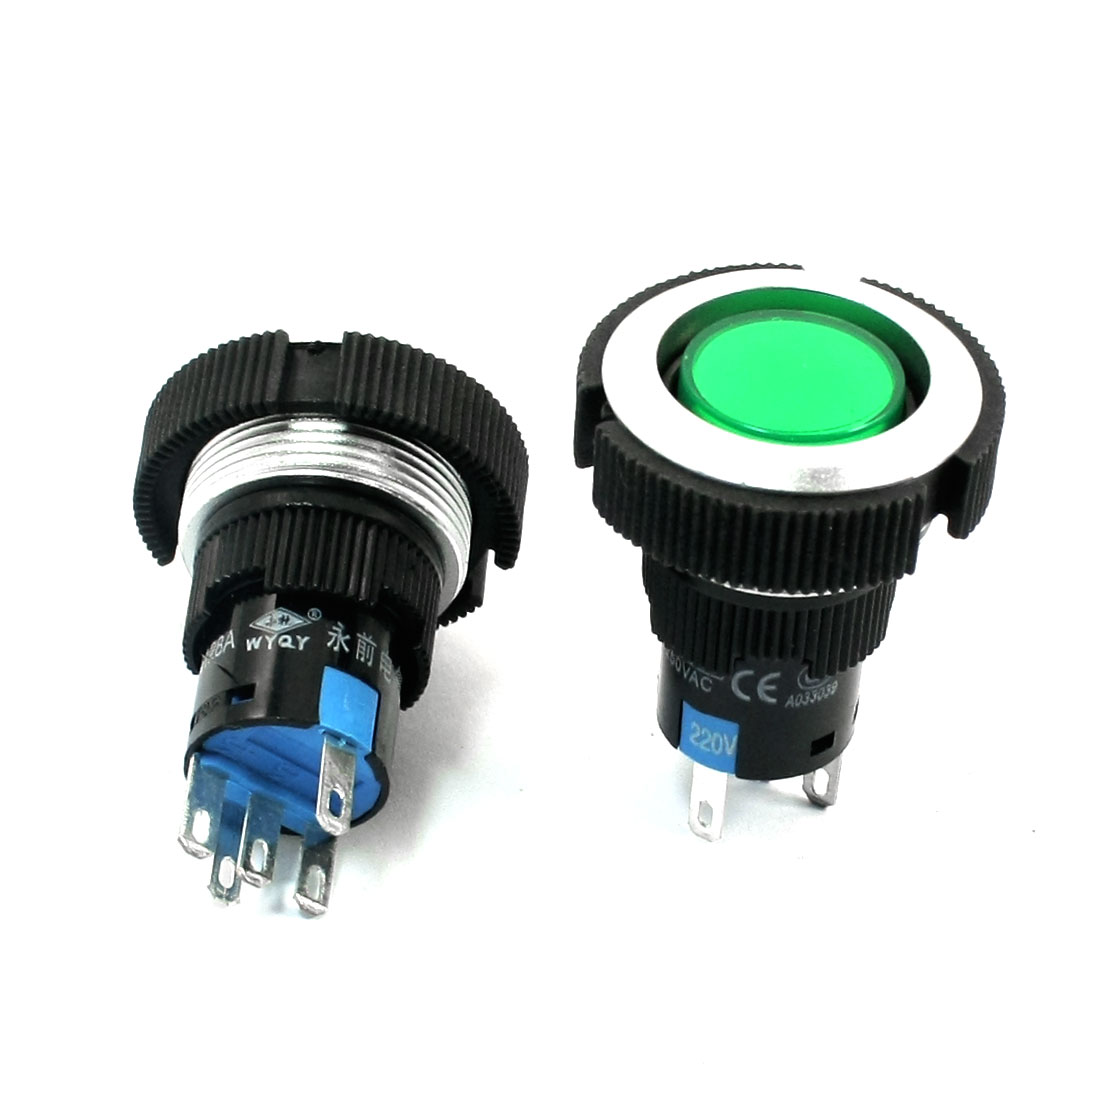 2Pcs 220V 22mm Dia Thread Panel Mounting SPDT 5-Pin Soldering Self-Locking Green Pilot Lamp Push Button Switch